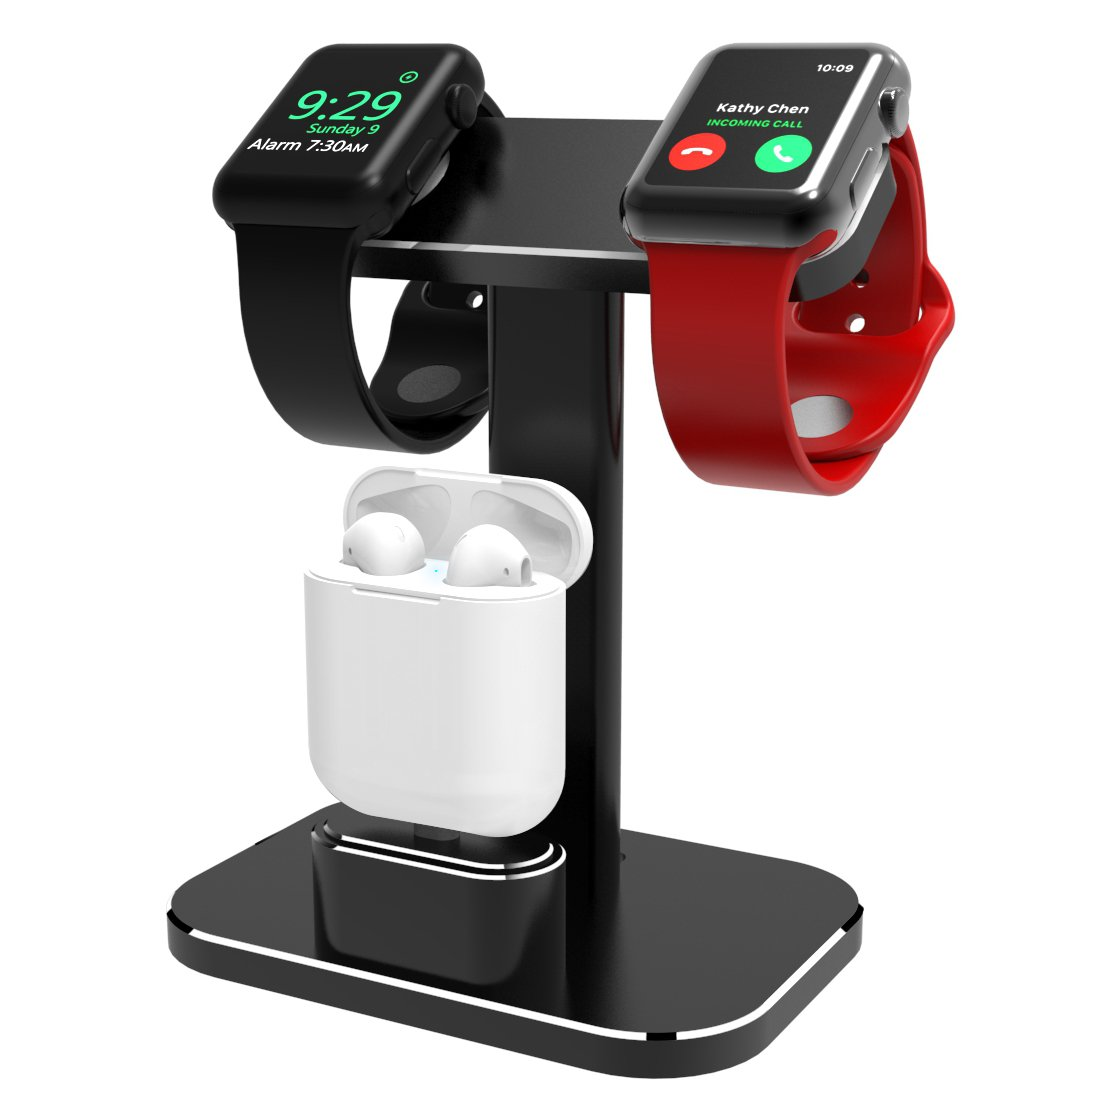 DHOUEA Compatible 2 in 1 Watch Stand Replacement for Apple Watch iWatch Charging Dock Station Stand Holder Aluminum Airpods Stand for Apple Watch Series 1/2 (38mm or 42mm) Airpods (Black)